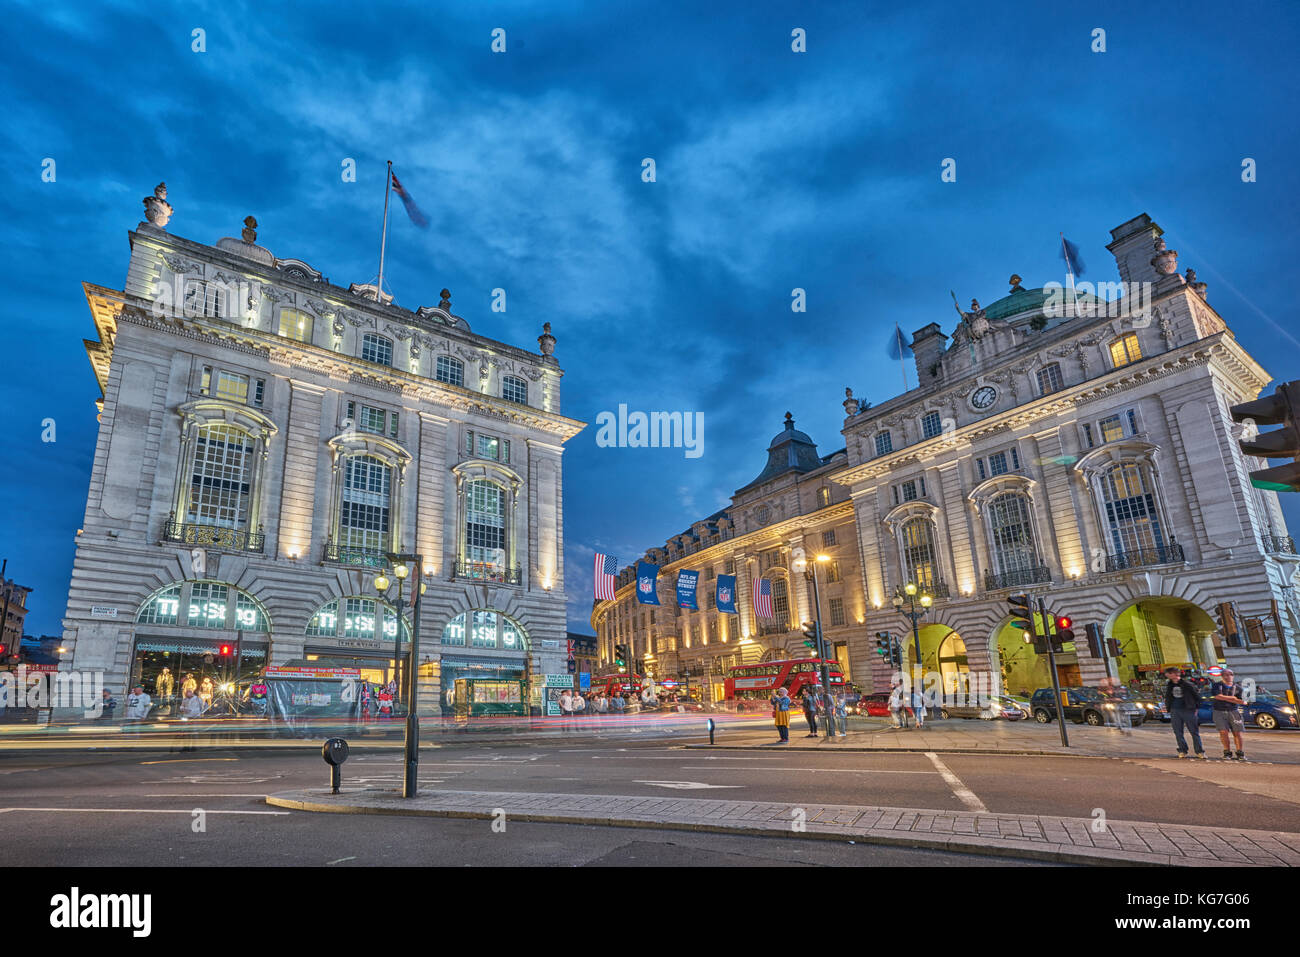 picadilly circus london - Stock Image